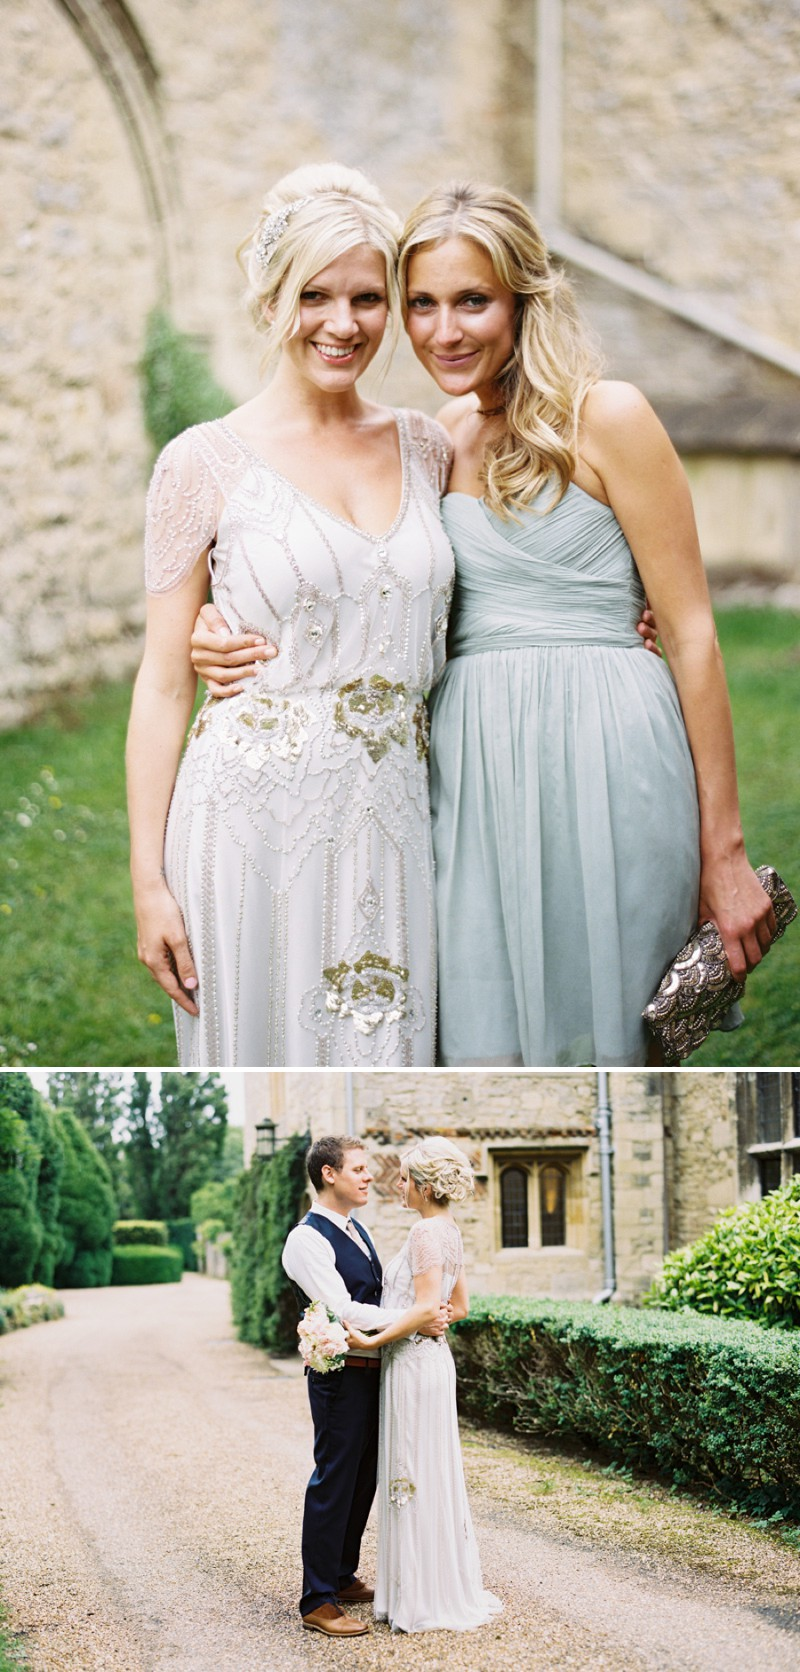 An English Country Garden And Art Deco Themed Wedding With A Jenny Packham Eden Dress At Notley Abbey And A Peony Bouquet._15